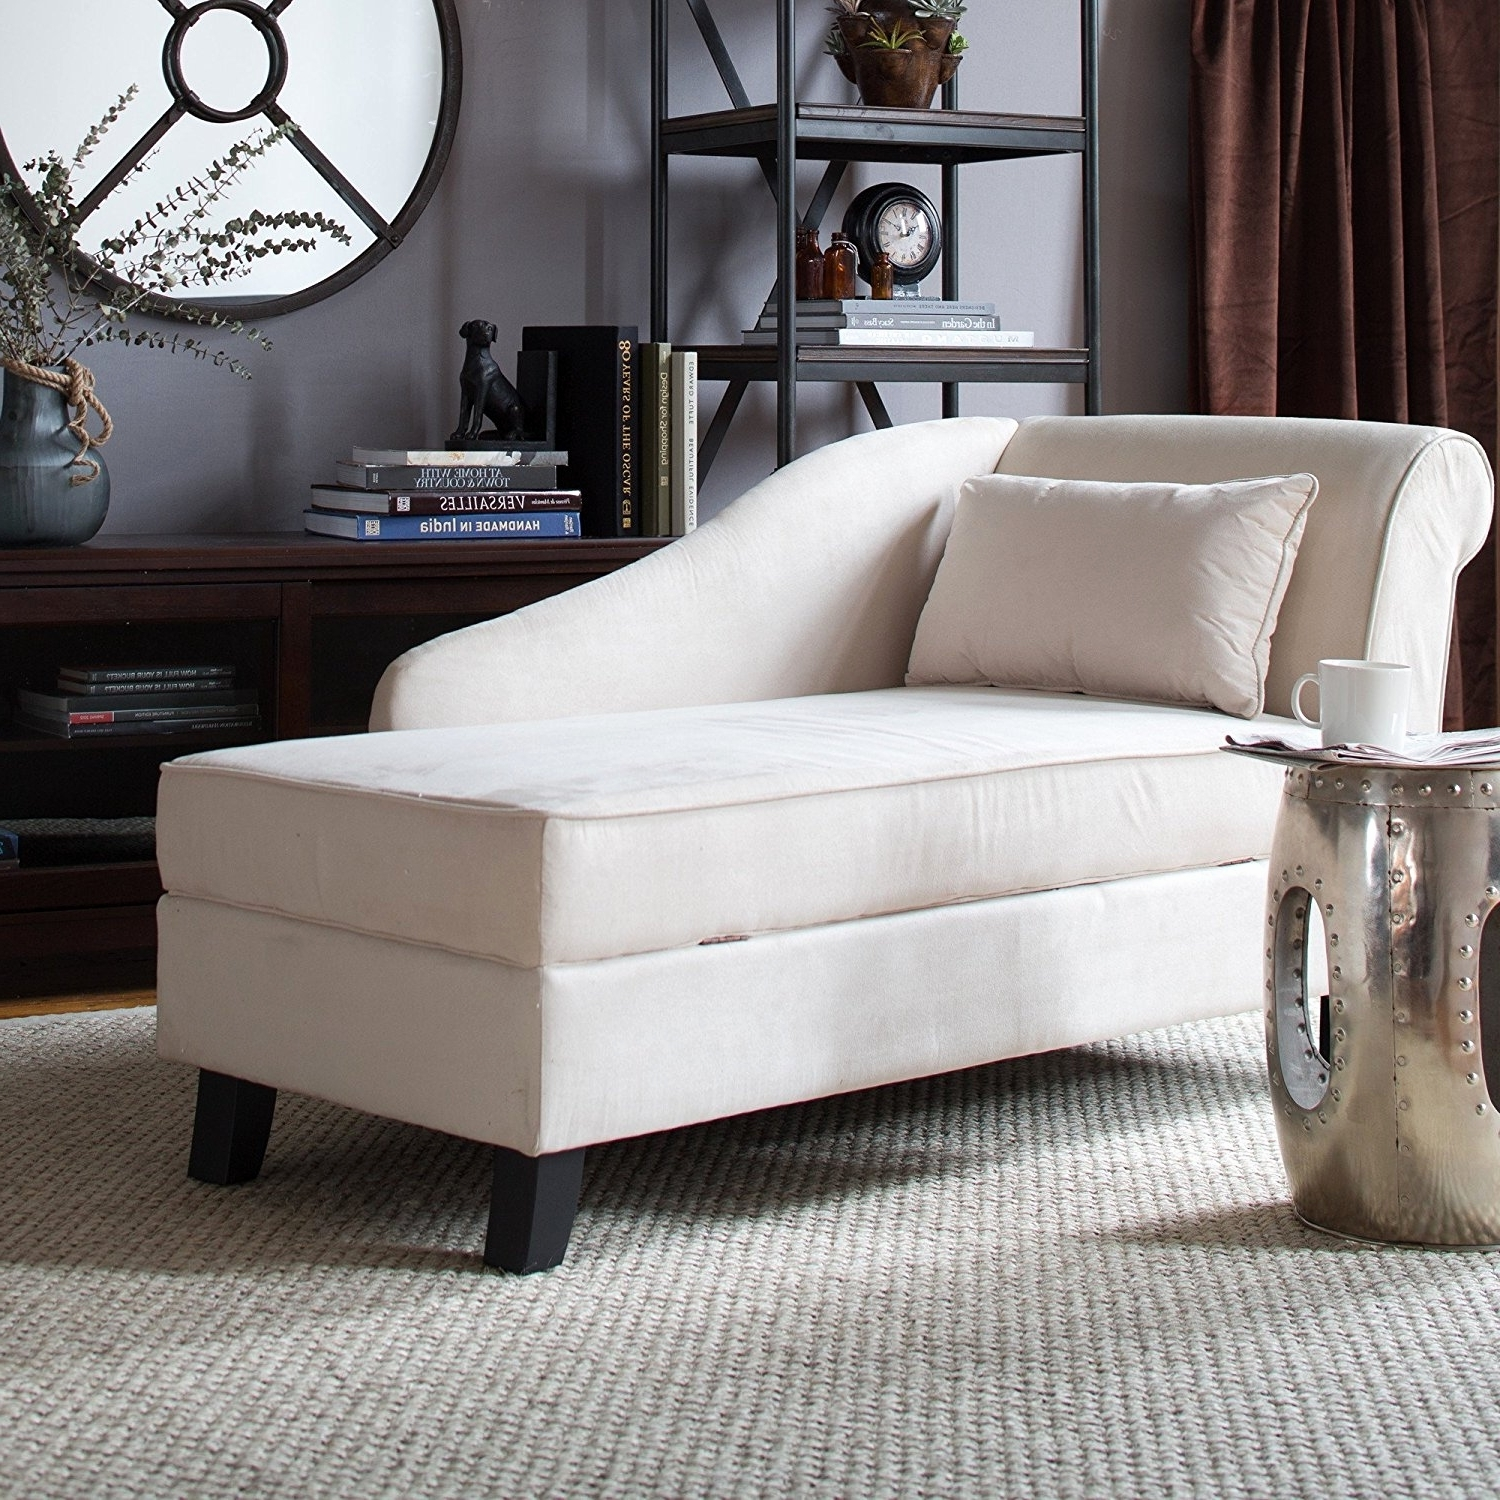 Well Known Convertible Chair : Lounge Chaise Lounge Furniture Oversized Inside Double Wide Chaise Lounges (View 8 of 15)